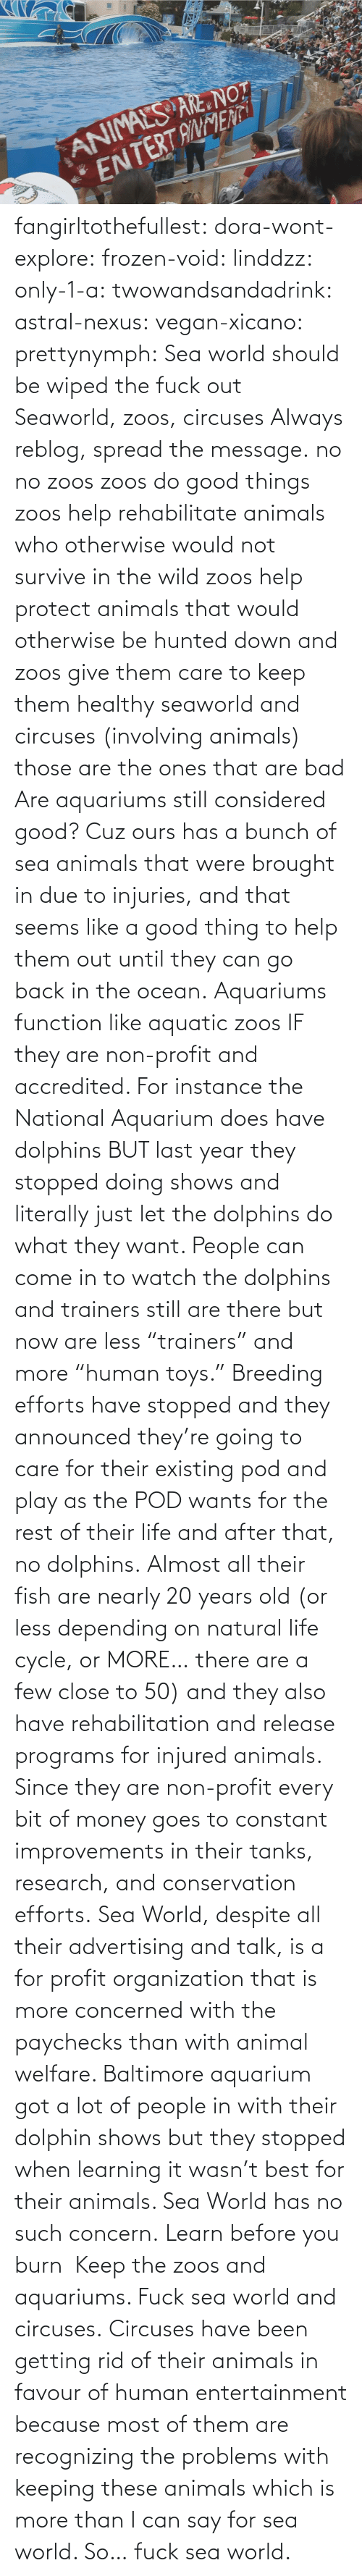 "Non: fangirltothefullest:  dora-wont-explore:  frozen-void:  linddzz:  only-1-a:  twowandsandadrink:  astral-nexus:  vegan-xicano:  prettynymph:  Sea world should be wiped the fuck out  Seaworld, zoos, circuses  Always reblog, spread the message.  no no zoos zoos do good things zoos help rehabilitate animals who otherwise would not survive in the wild zoos help protect animals that would otherwise be hunted down and zoos give them care to keep them healthy seaworld and circuses (involving animals) those are the ones that are bad  Are aquariums still considered good? Cuz ours has a bunch of sea animals that were brought in due to injuries, and that seems like a good thing to help them out until they can go back in the ocean.  Aquariums function like aquatic zoos IF they are non-profit and accredited. For instance the National Aquarium does have dolphins BUT last year they stopped doing shows and literally just let the dolphins do what they want. People can come in to watch the dolphins and trainers still are there but now are less ""trainers"" and more ""human toys."" Breeding efforts have stopped and they announced they're going to care for their existing pod and play as the POD wants for the rest of their life and after that, no dolphins. Almost all their fish are nearly 20 years old (or less depending on natural life cycle, or MORE… there are a few close to 50) and they also have rehabilitation and release programs for injured animals. Since they are non-profit every bit of money goes to constant improvements in their tanks, research, and conservation efforts. Sea World, despite all their advertising and talk, is a for profit organization that is more concerned with the paychecks than with animal welfare. Baltimore aquarium got a lot of people in with their dolphin shows but they stopped when learning it wasn't best for their animals. Sea World has no such concern.  Learn before you burn   Keep the zoos and aquariums. Fuck sea world and circuses.  Circuses have been getting rid of  their animals in favour of human entertainment because most of them are recognizing the problems with keeping these animals which is more than I can say for sea world. So… fuck sea world."